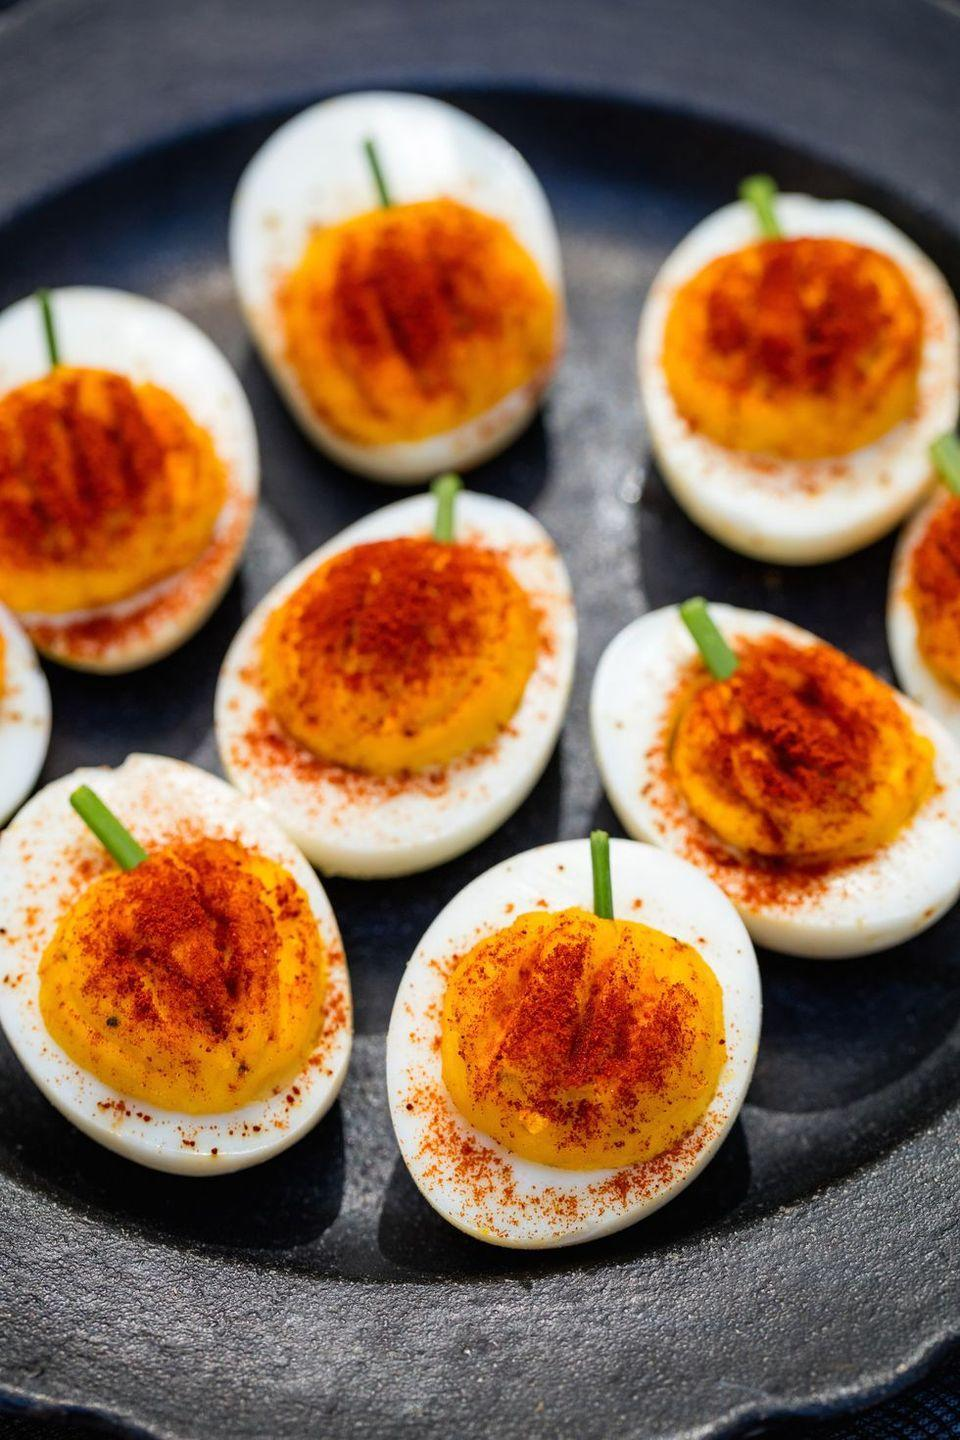 """<p>All it takes is a few twists (we're talking a chive stem and a deep orange yolk) to make this traditional recipe festive for Halloween.</p><p><em>Get the recipe at <a href=""""https://www.delish.com/cooking/recipe-ideas/recipes/a44140/pumpkin-deviled-eggs-recipe/"""" rel=""""nofollow noopener"""" target=""""_blank"""" data-ylk=""""slk:Delish"""" class=""""link rapid-noclick-resp"""">Delish</a>.</em></p>"""